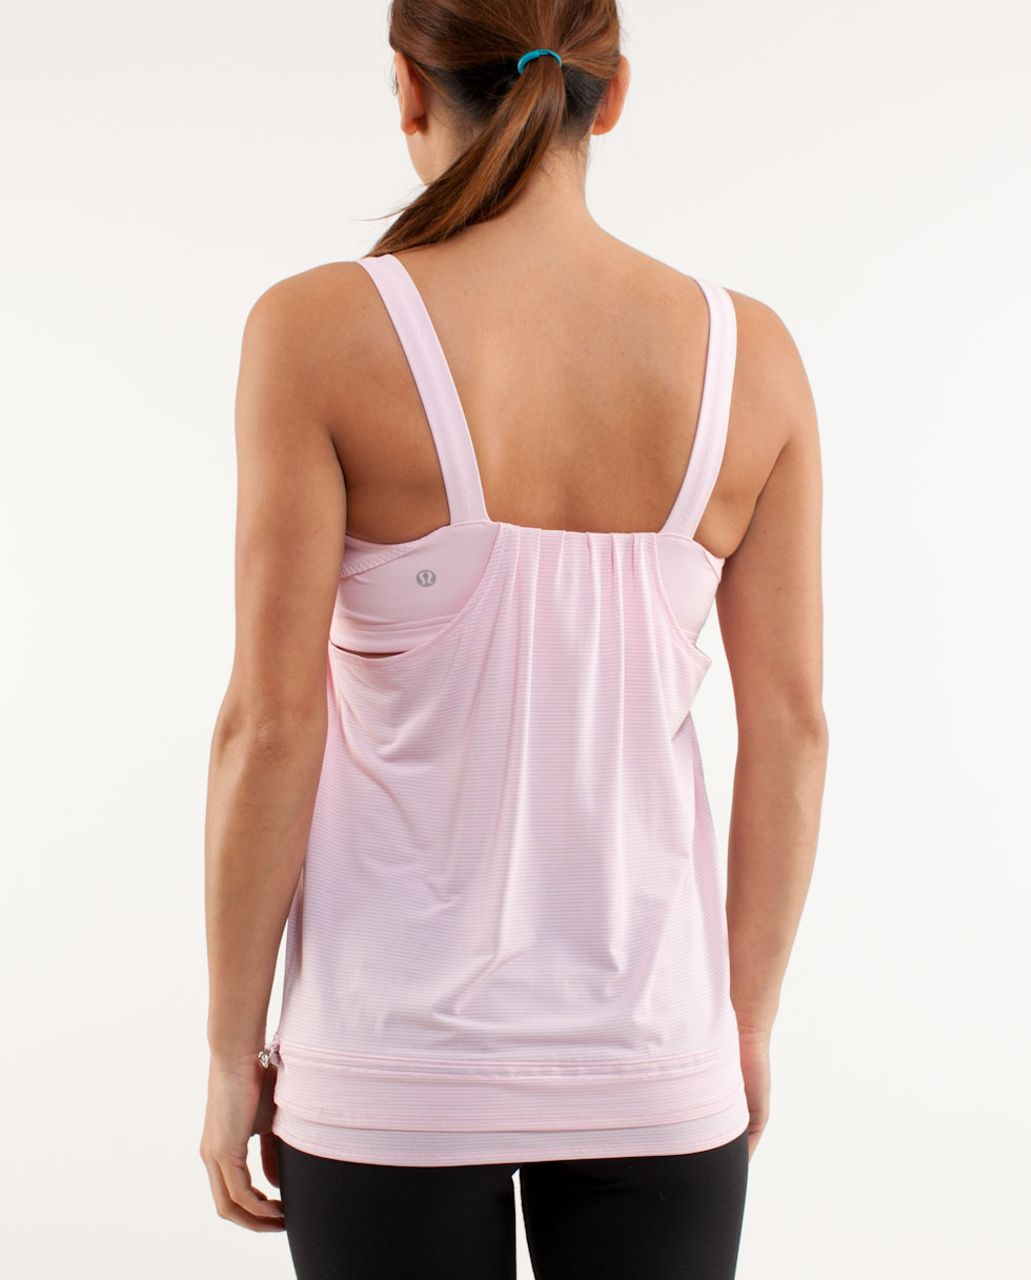 Lululemon Run:  Back On Track Tank - Heathered Pig Pink /  Pig Pink